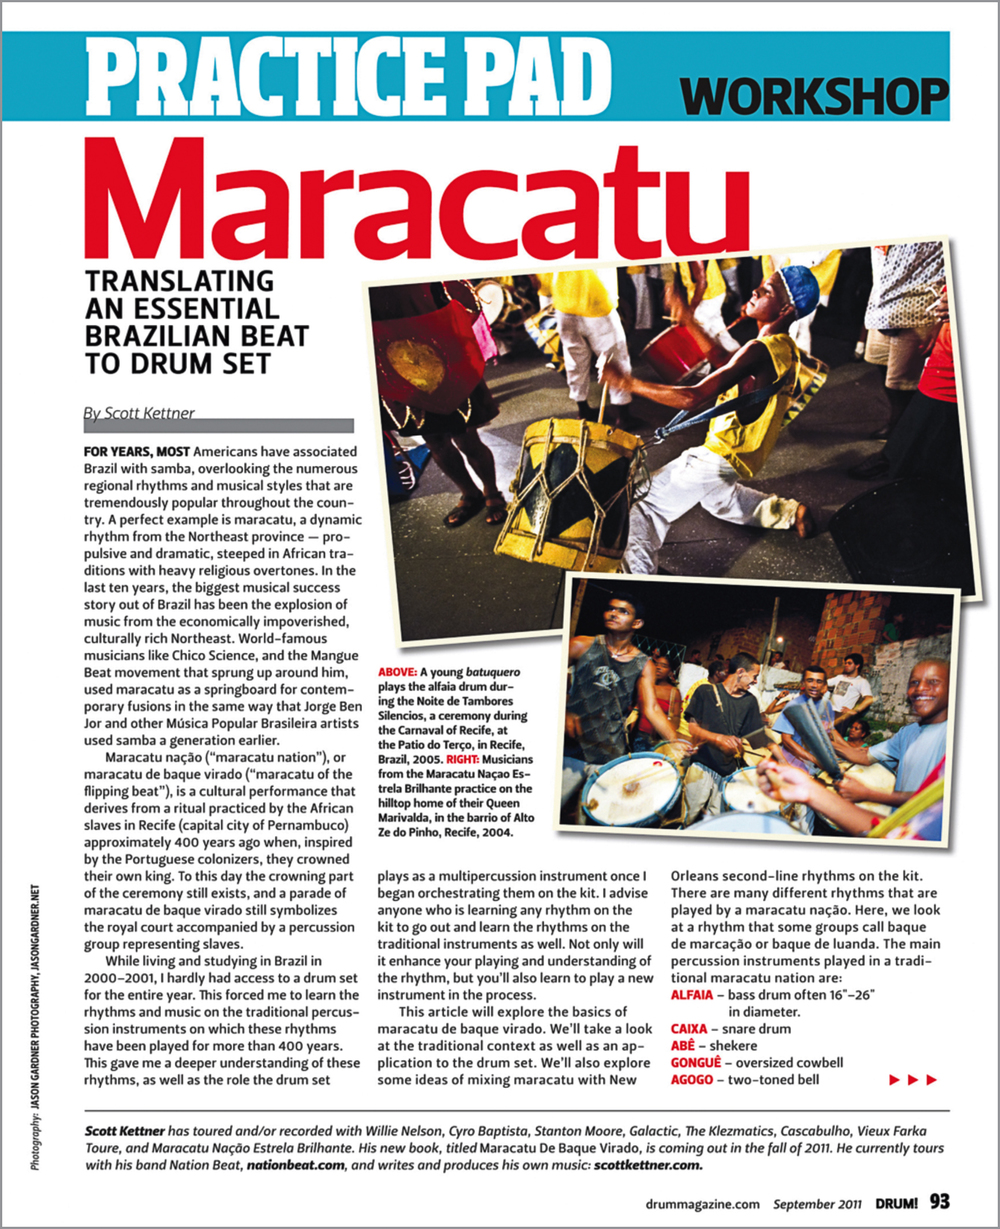 Images published in  Drum Magazine  in an article about the maracatu drumming style.